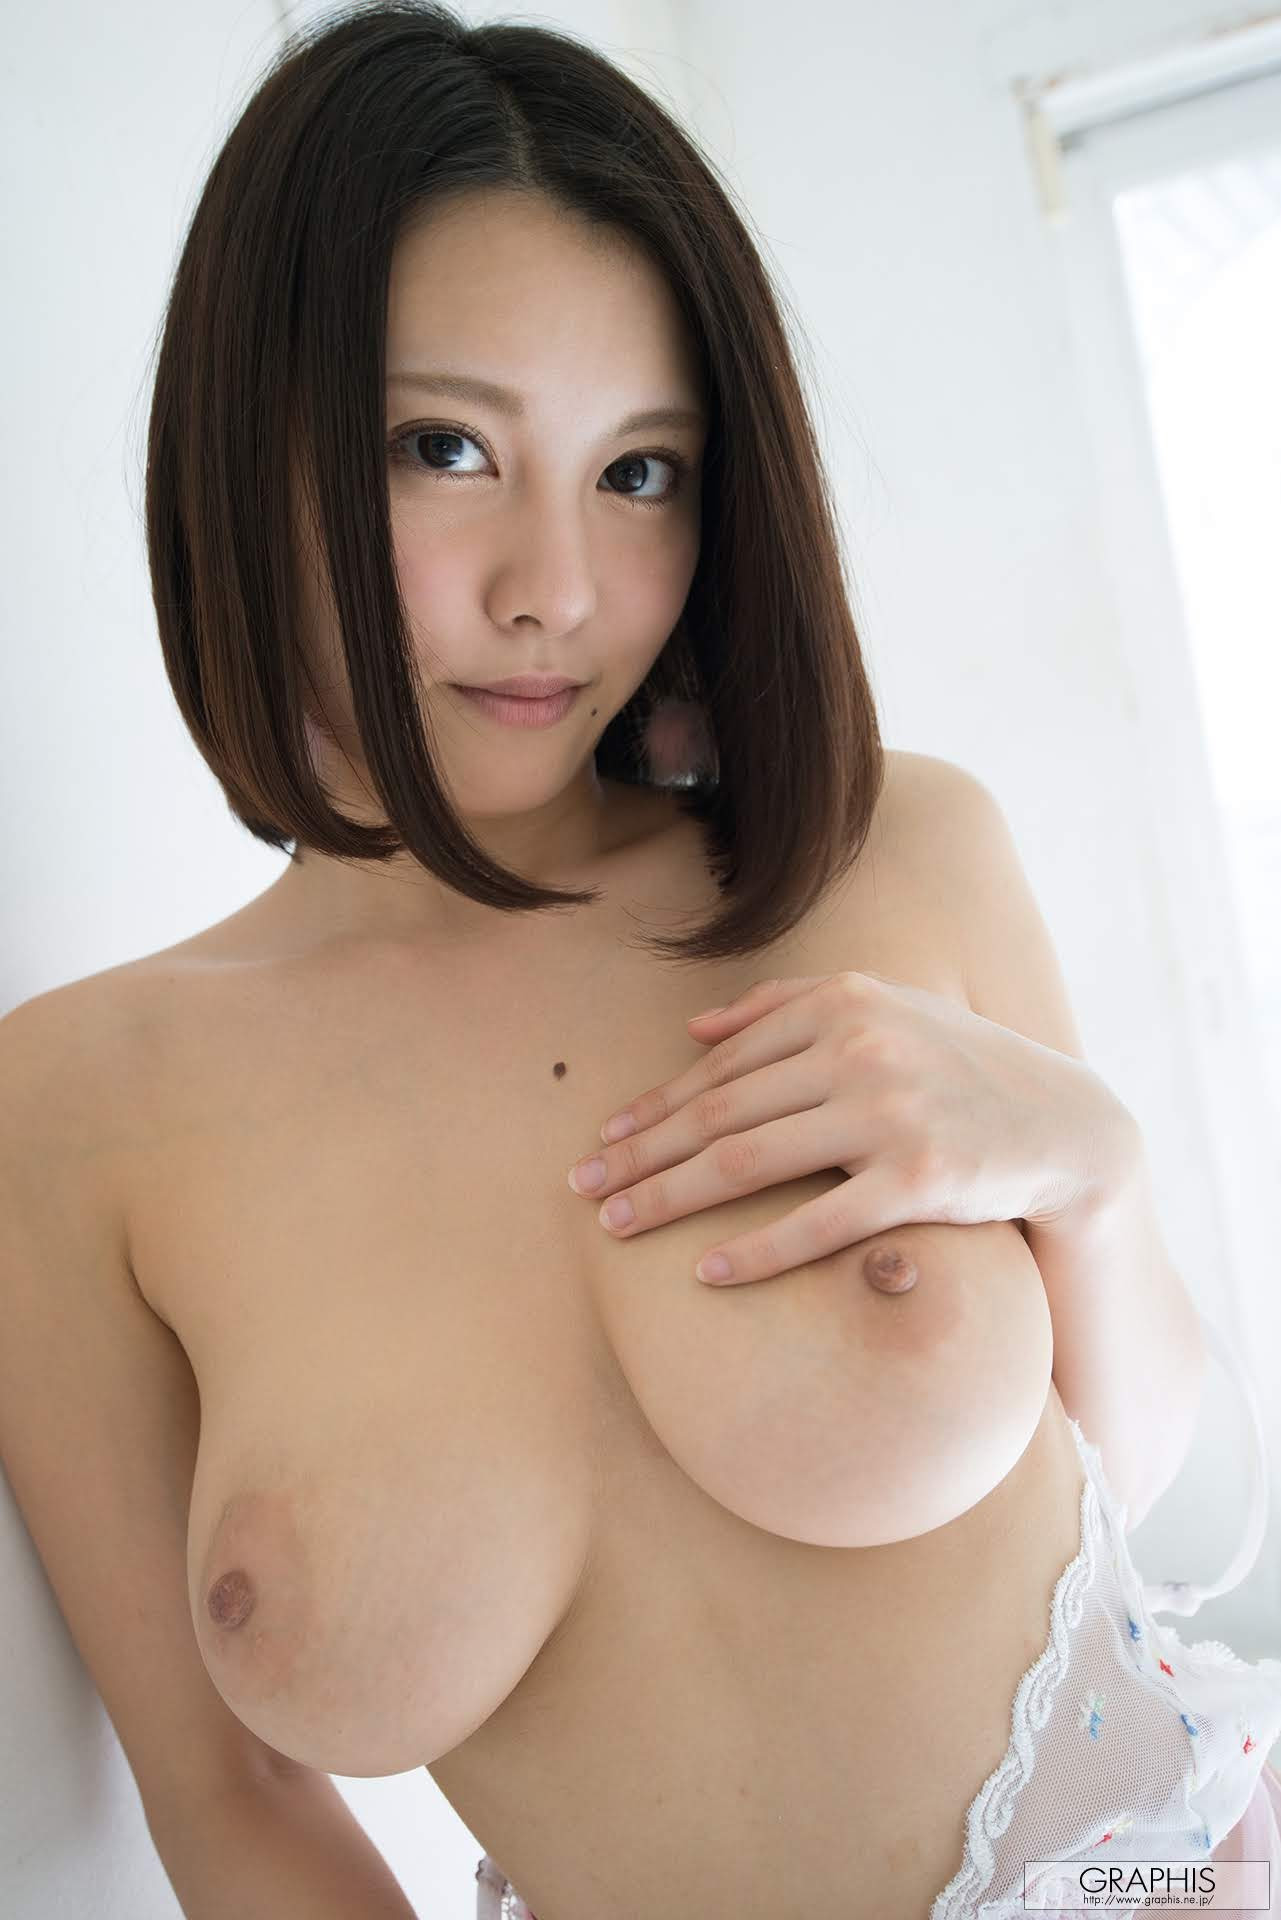 4K Porno China girl of my dreams - china matsuoka porn pic - eporner